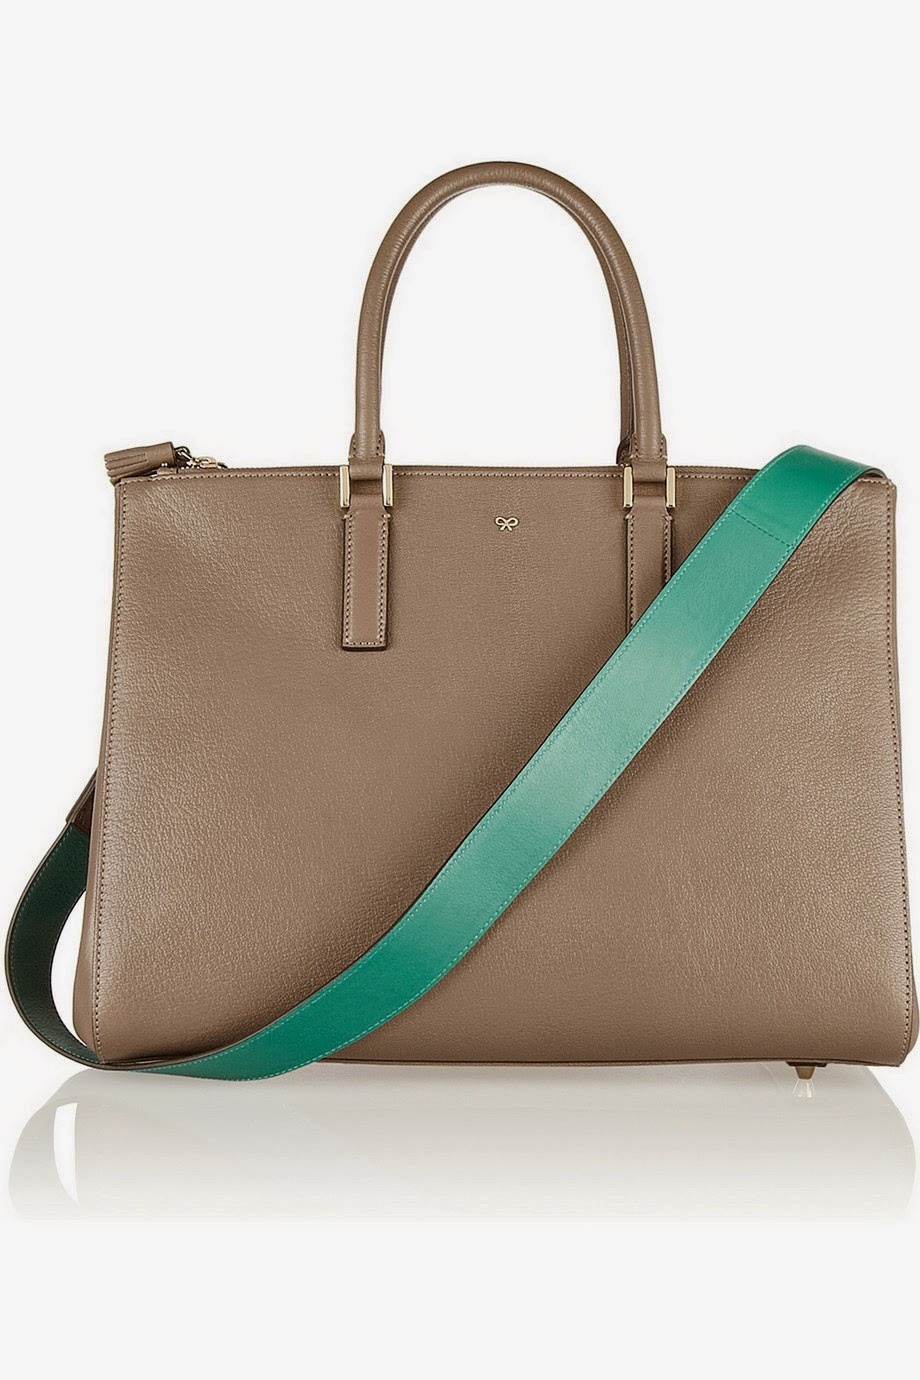 Net-a-Porter Anya Hindmarch Ebury textured-leather tote